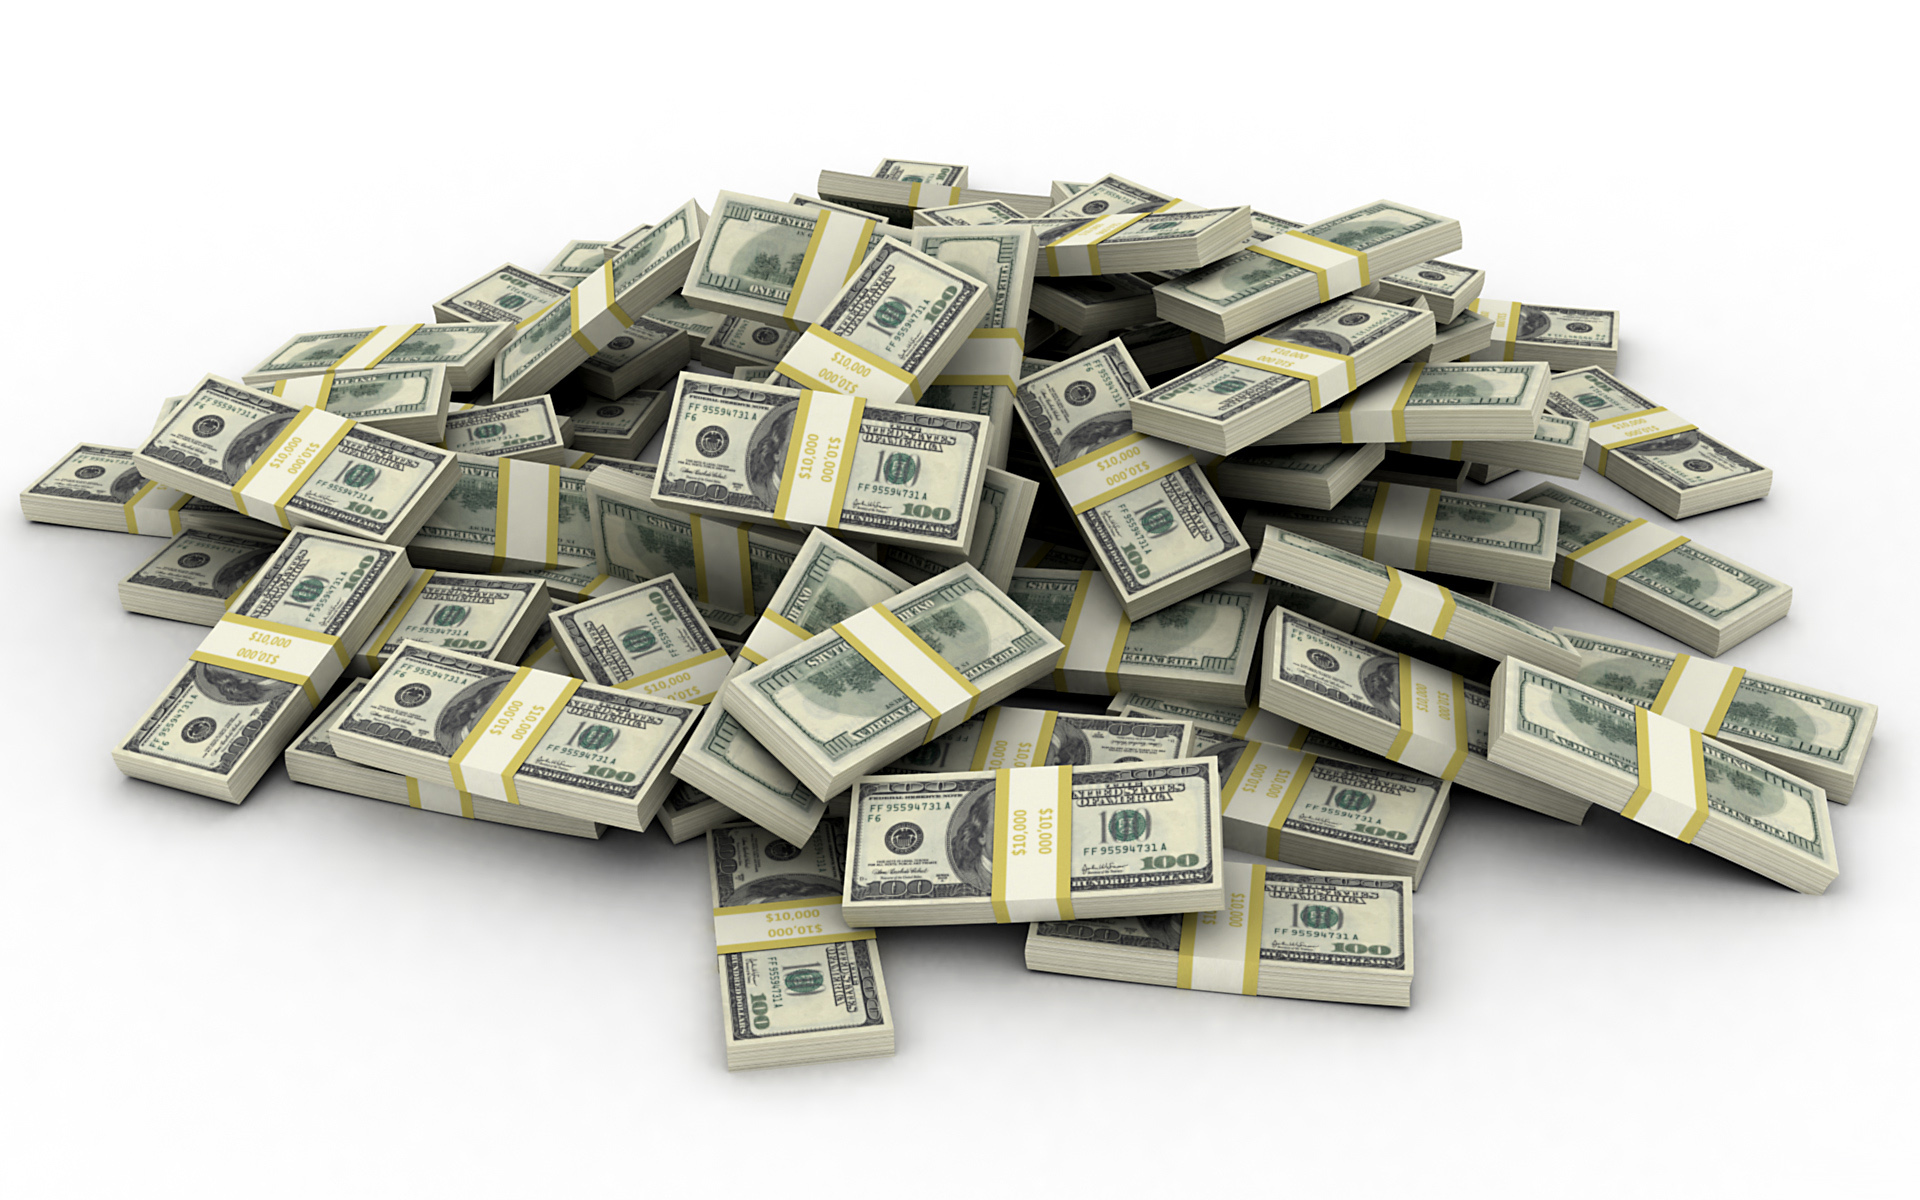 200 Ghanaians join class of dollar millionaires in 2016 - Report